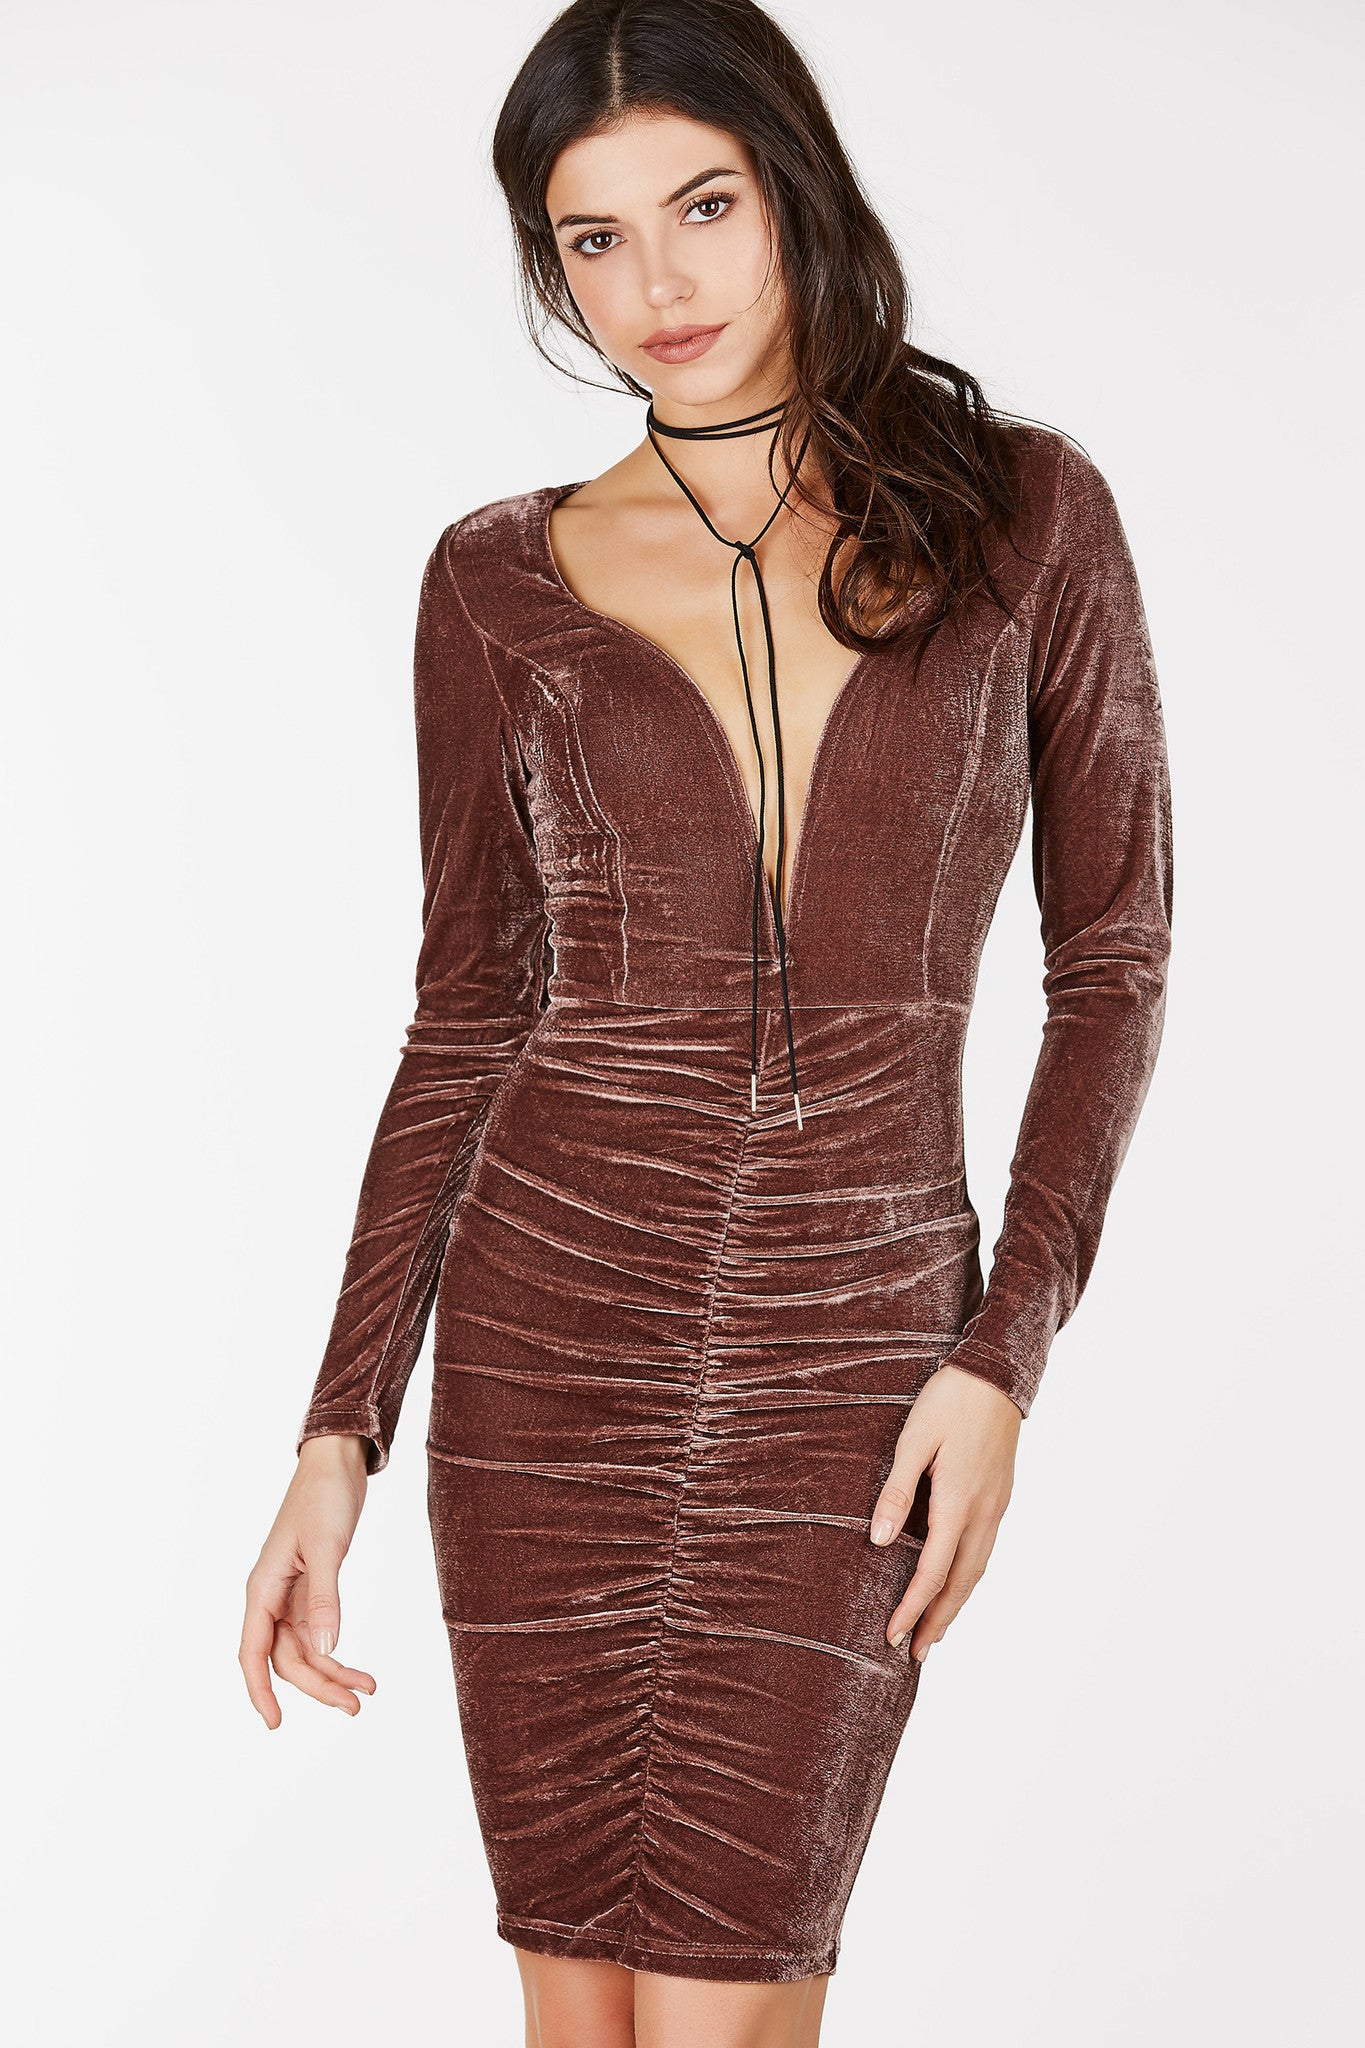 Long sleeve midi dress with deep sweet heart inspired wired neckline. Ruched detailing down the center with velvet finish all around. Slim fit with single back zip closure.